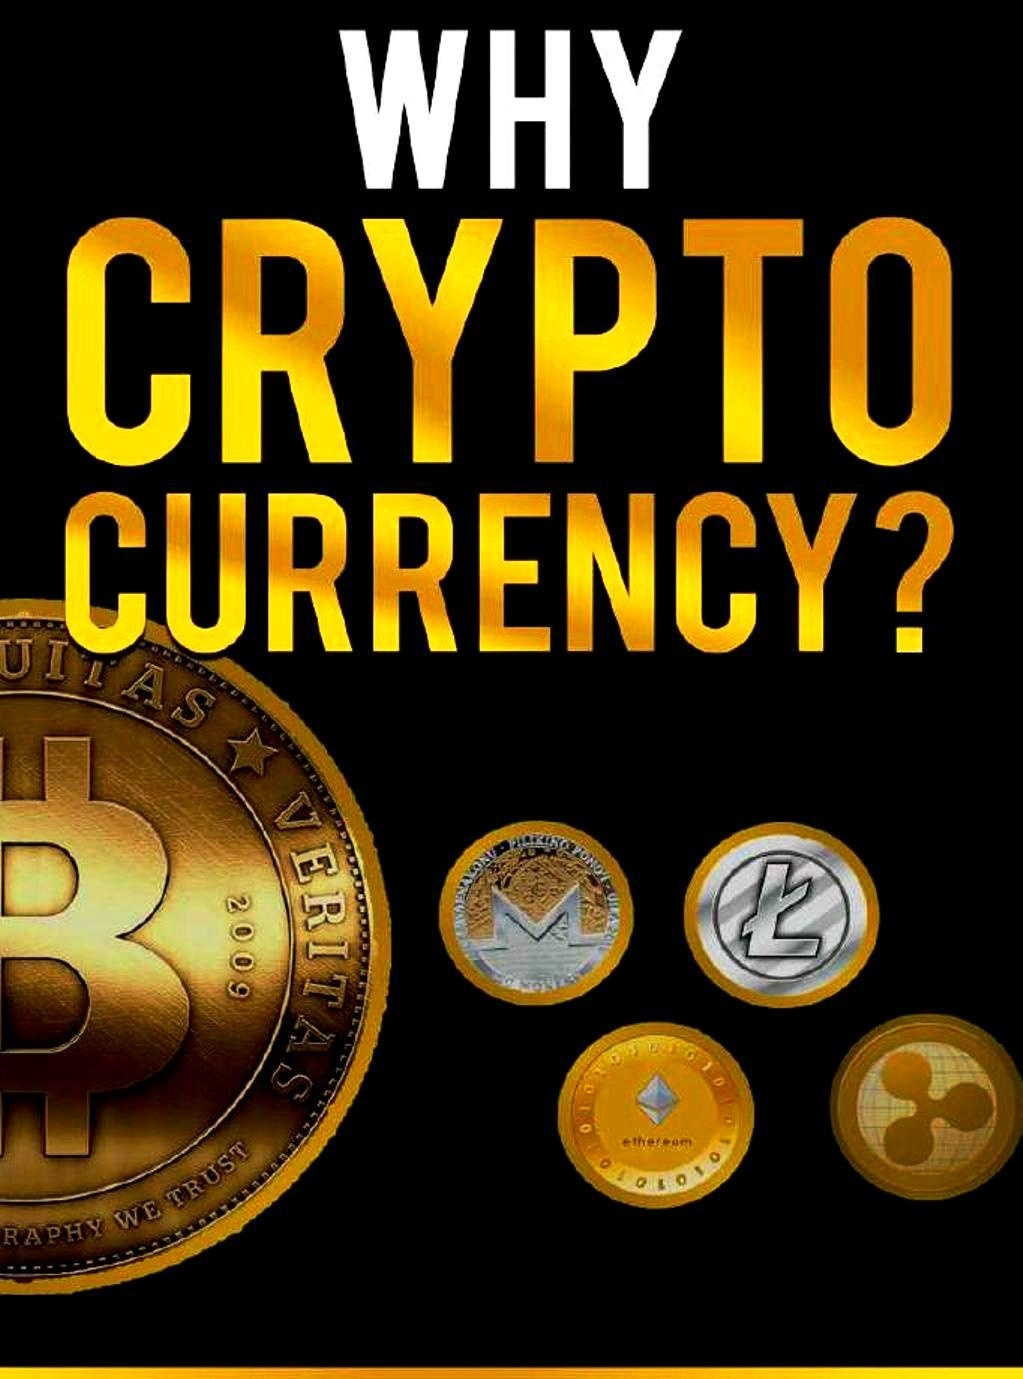 Why Cryptocurrency?